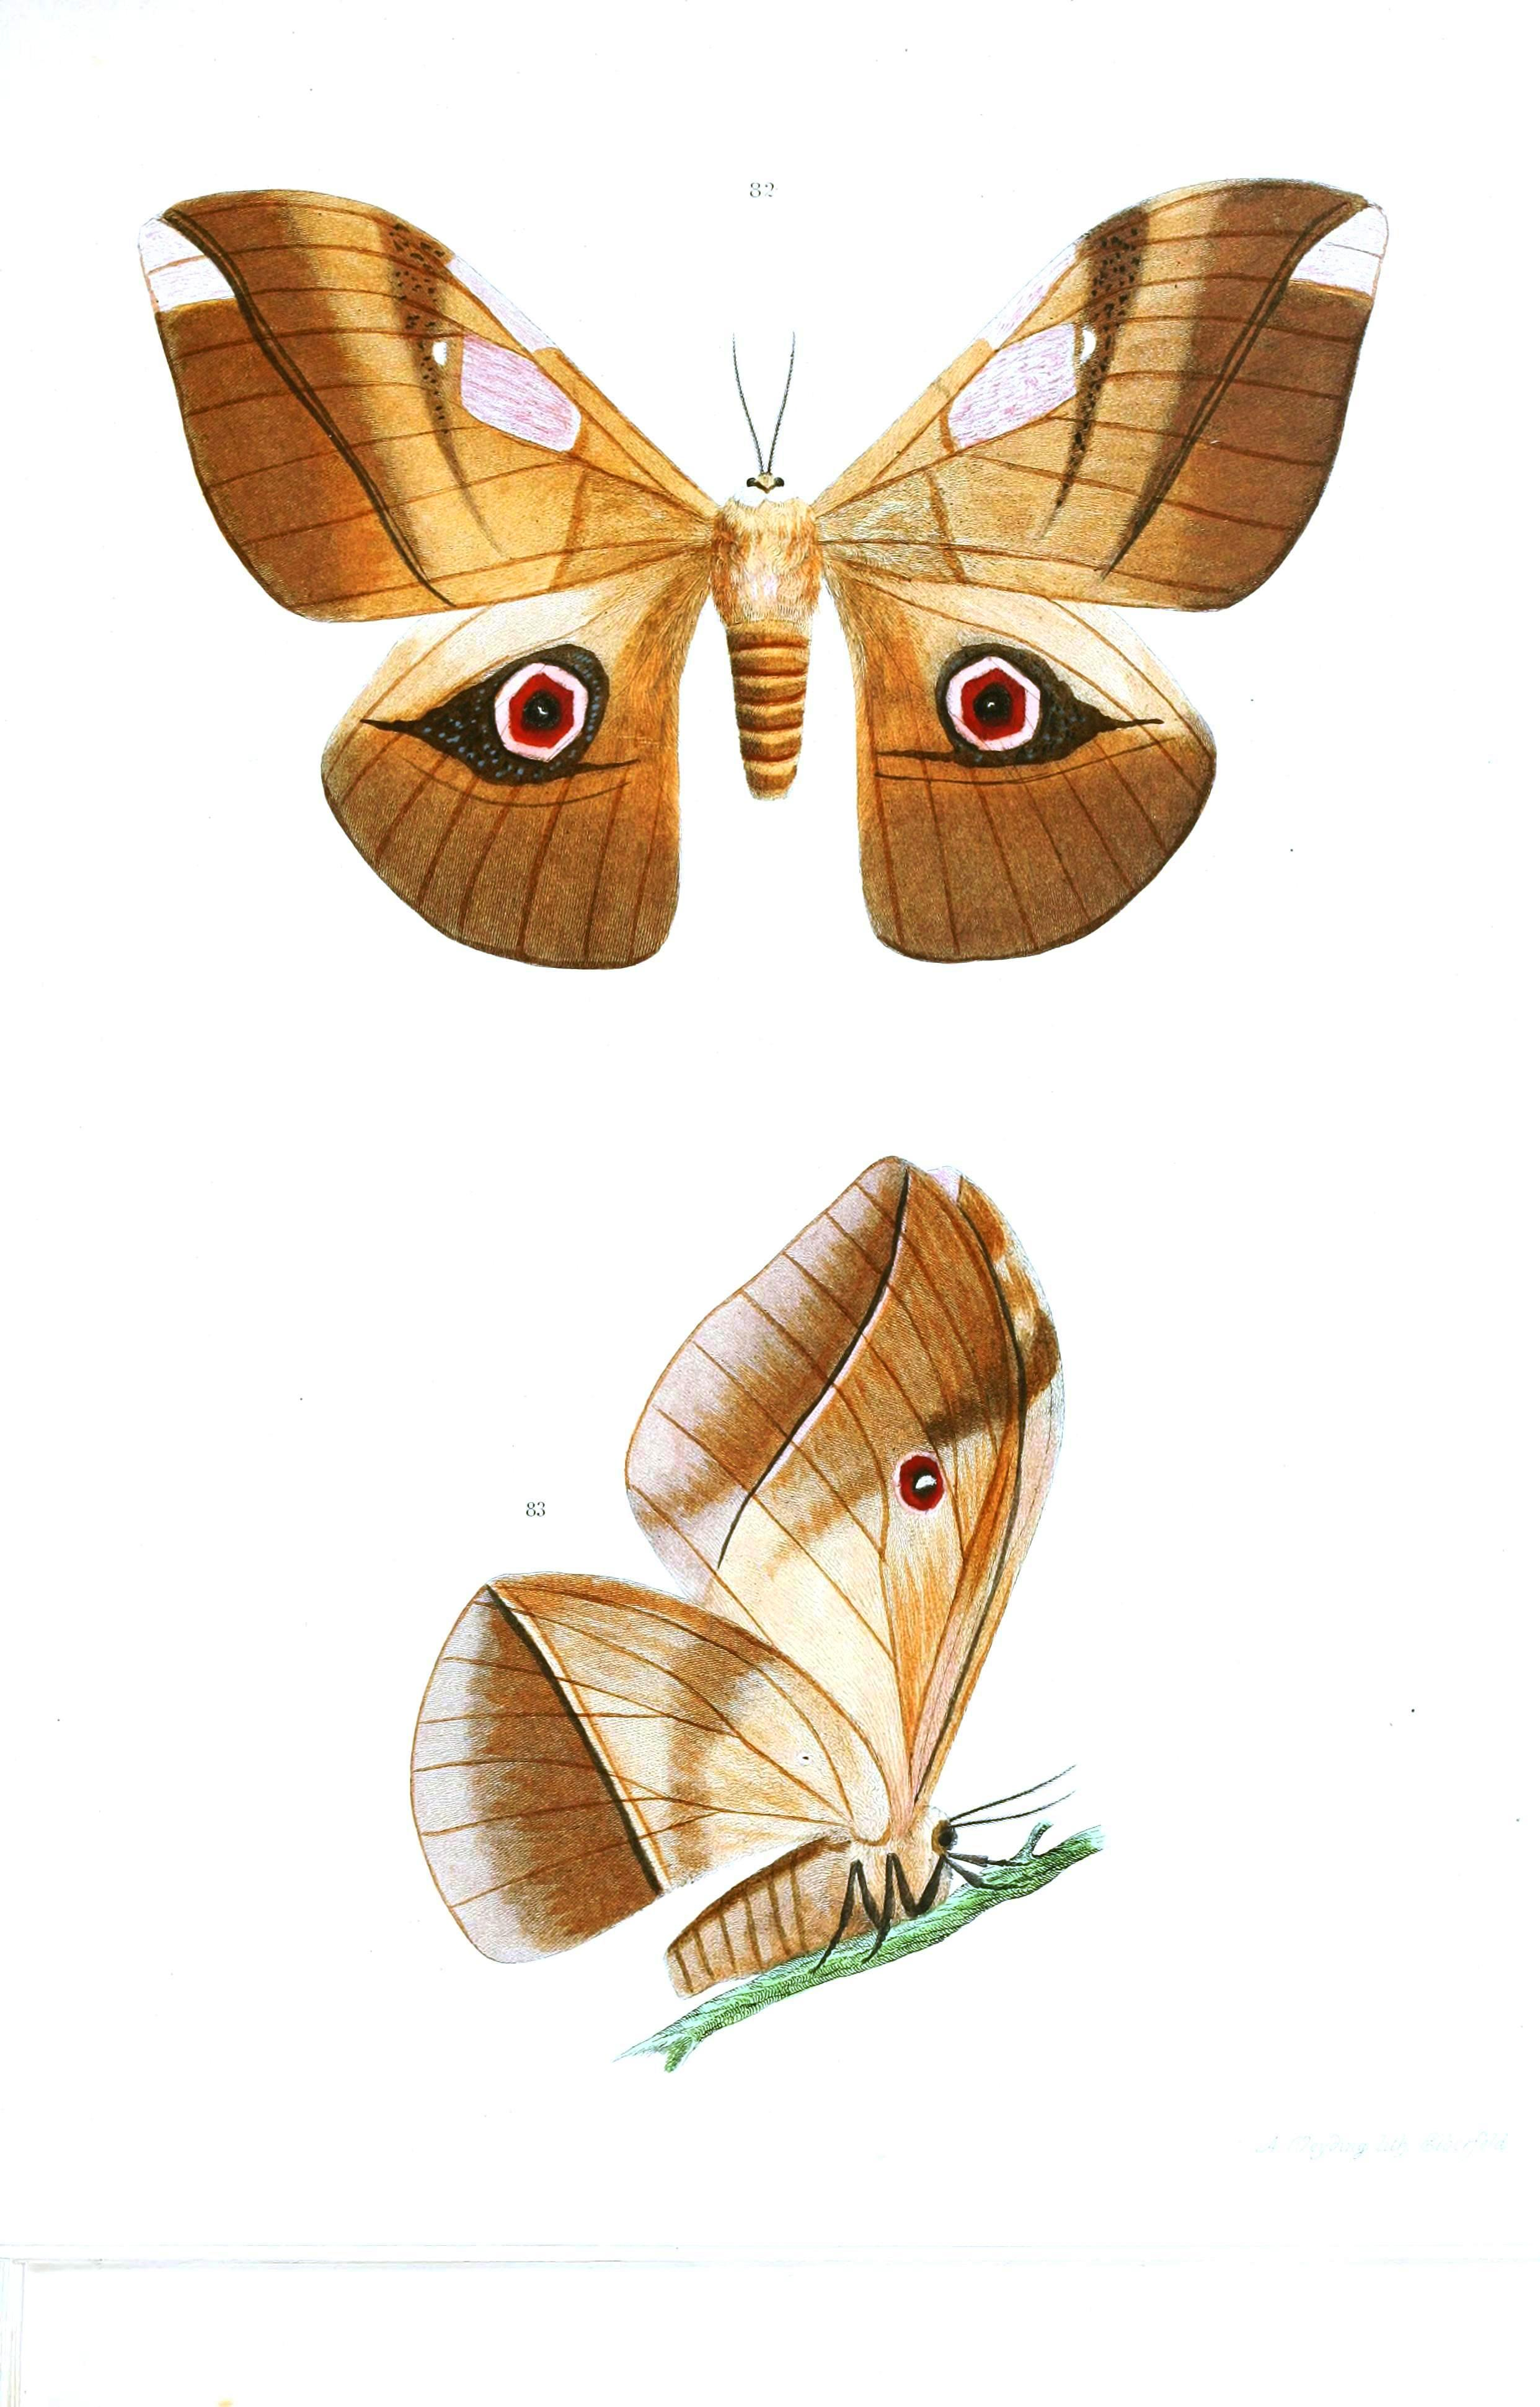 Animal - Insect - Butterflies - Moth 40